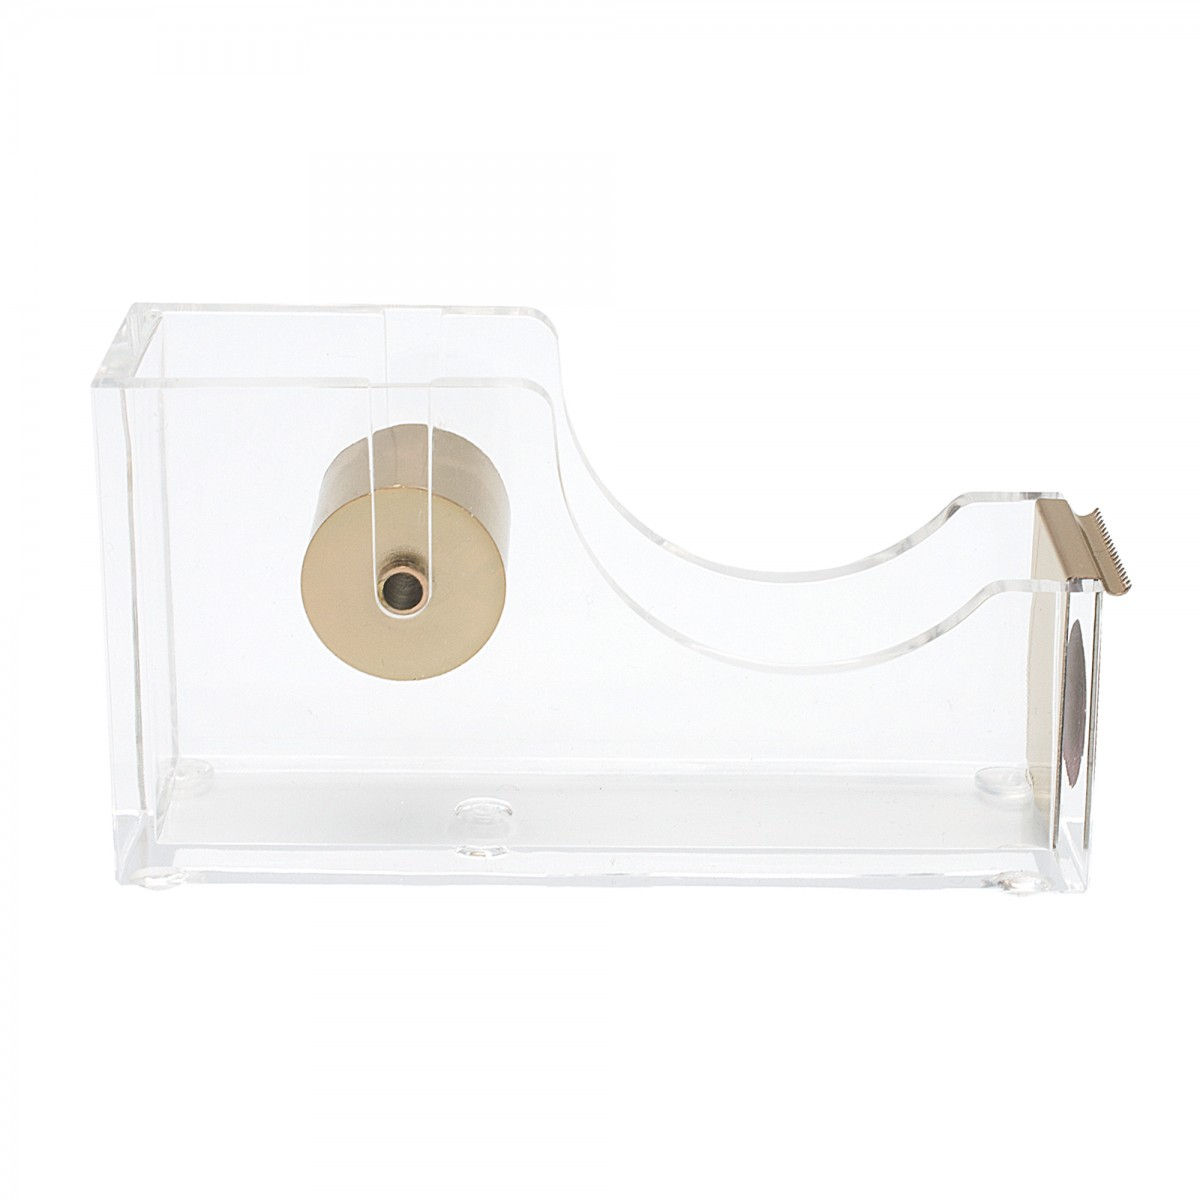 STATIONERY.LIFE ACRYLIC TAPE DISPENSER ROSEGOLD